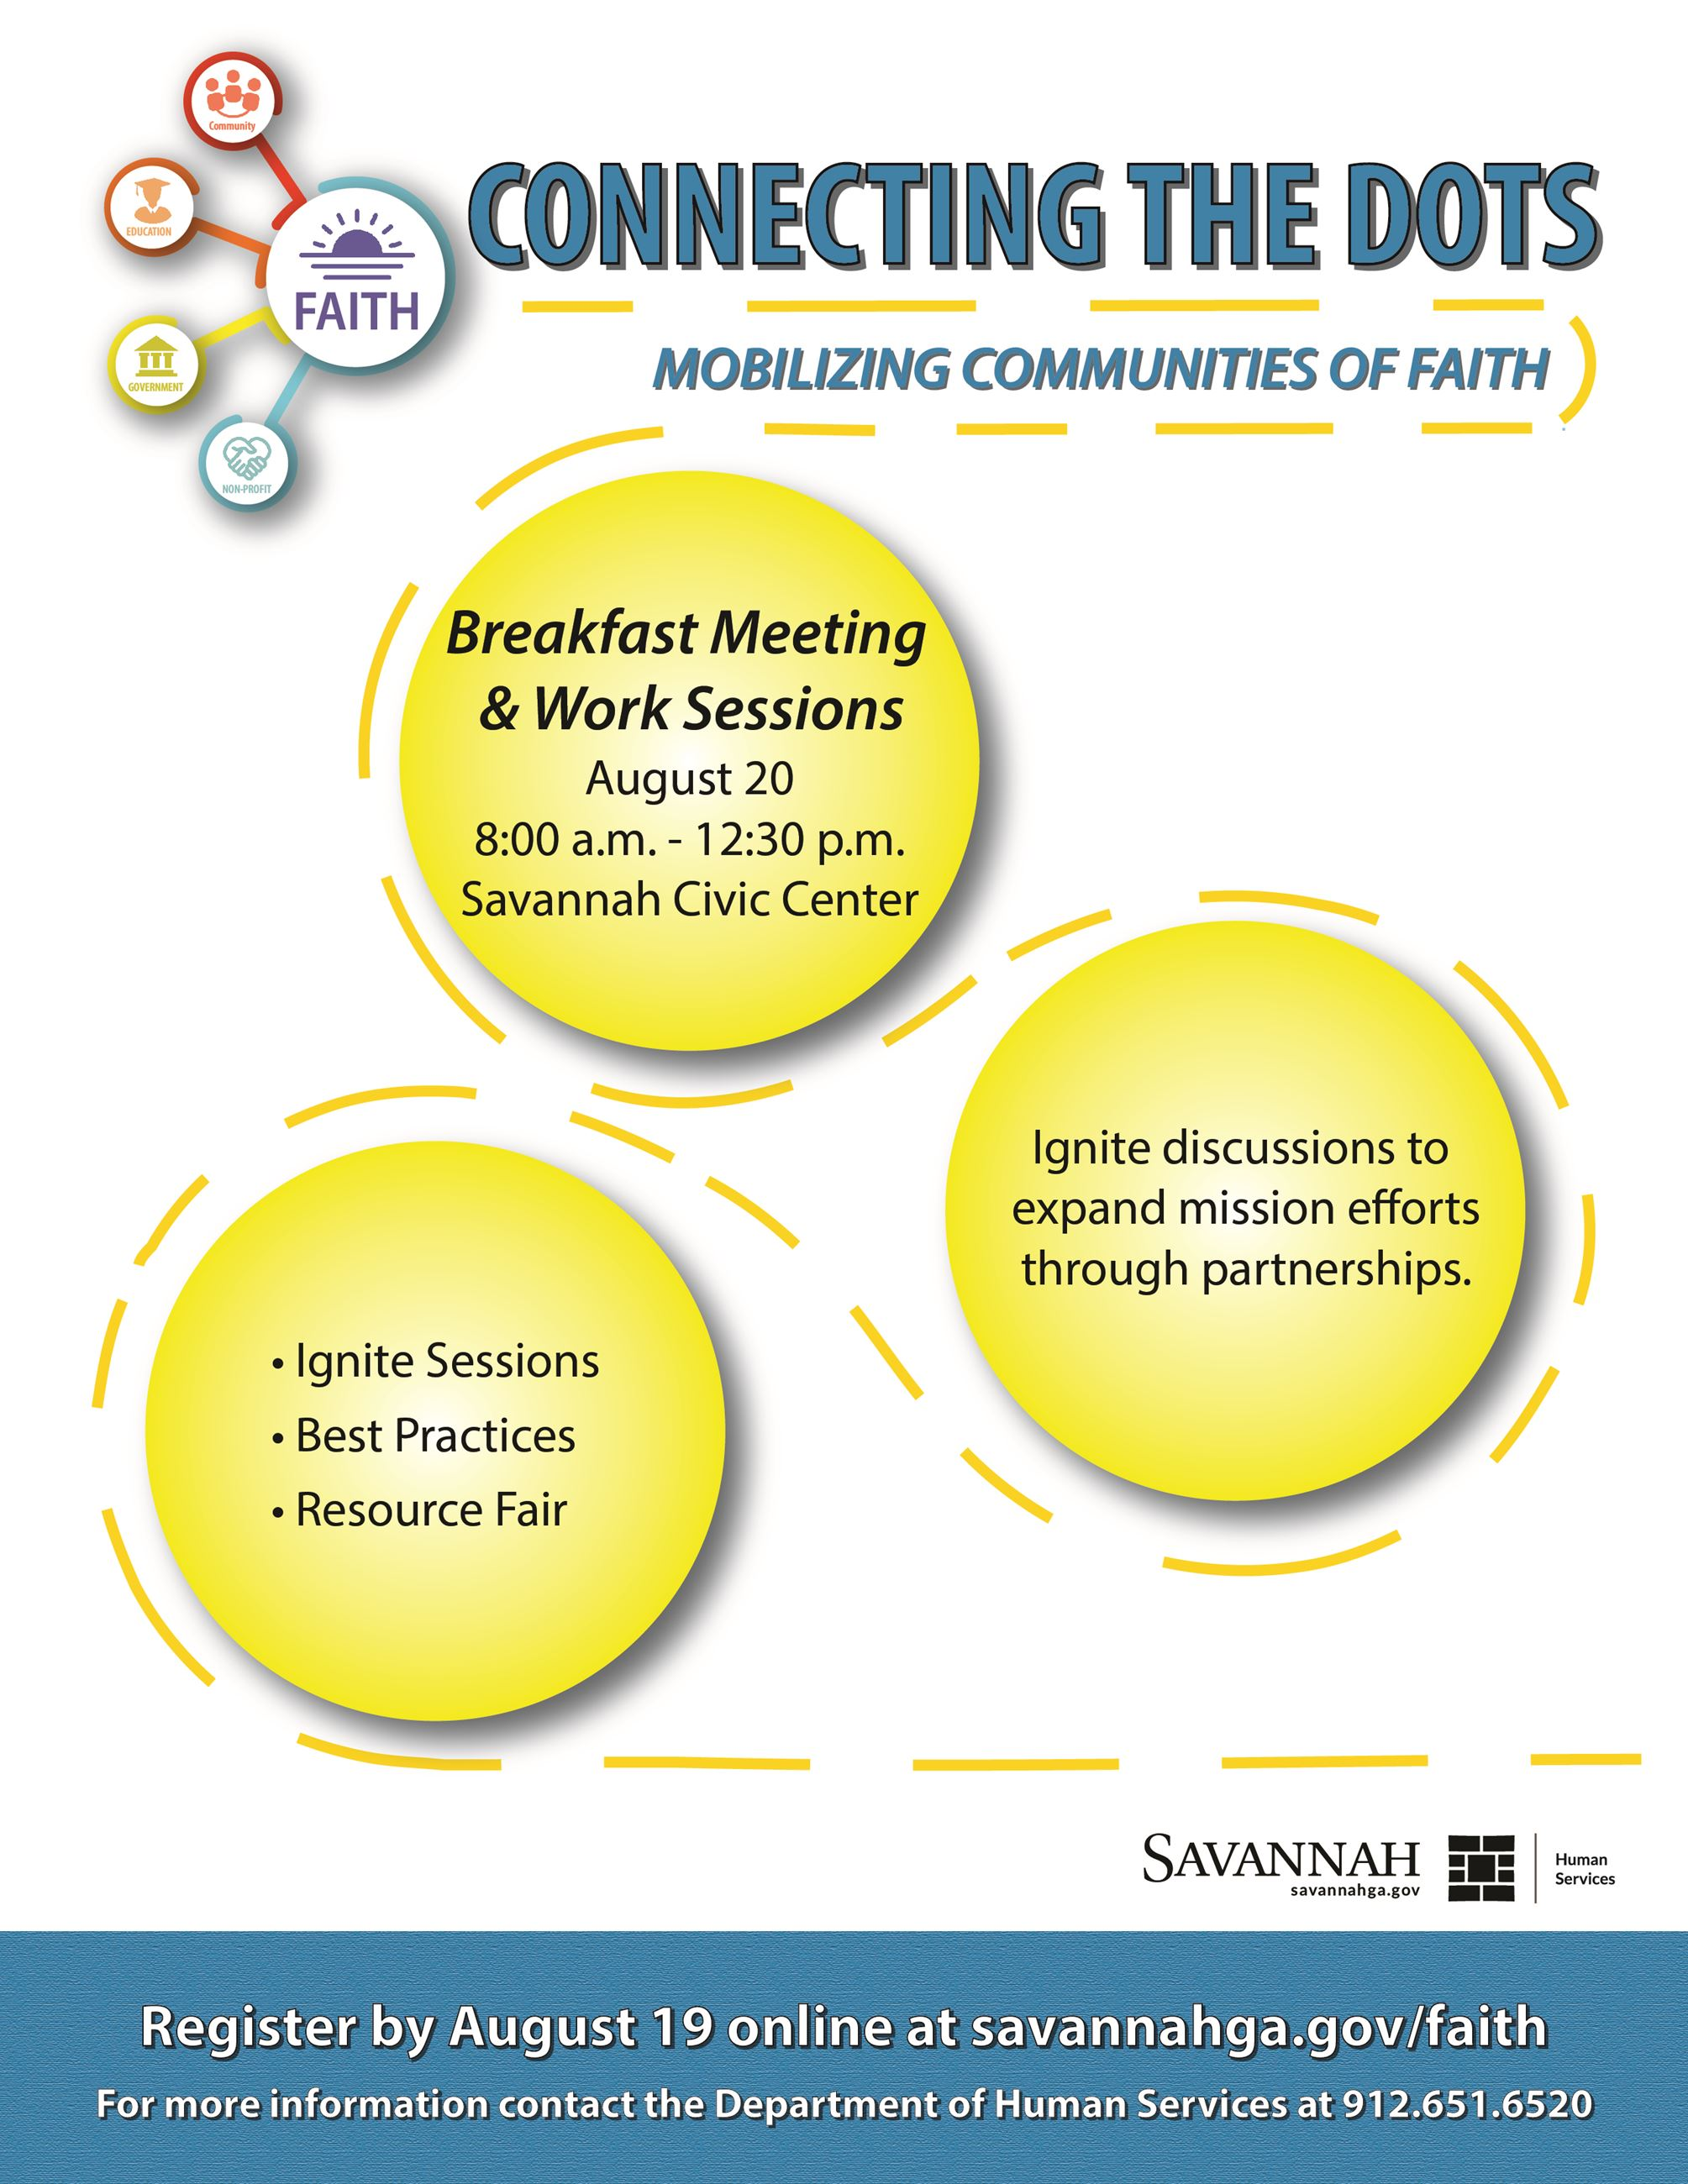 Connecting the Dots Mobilizing Communities of Faith